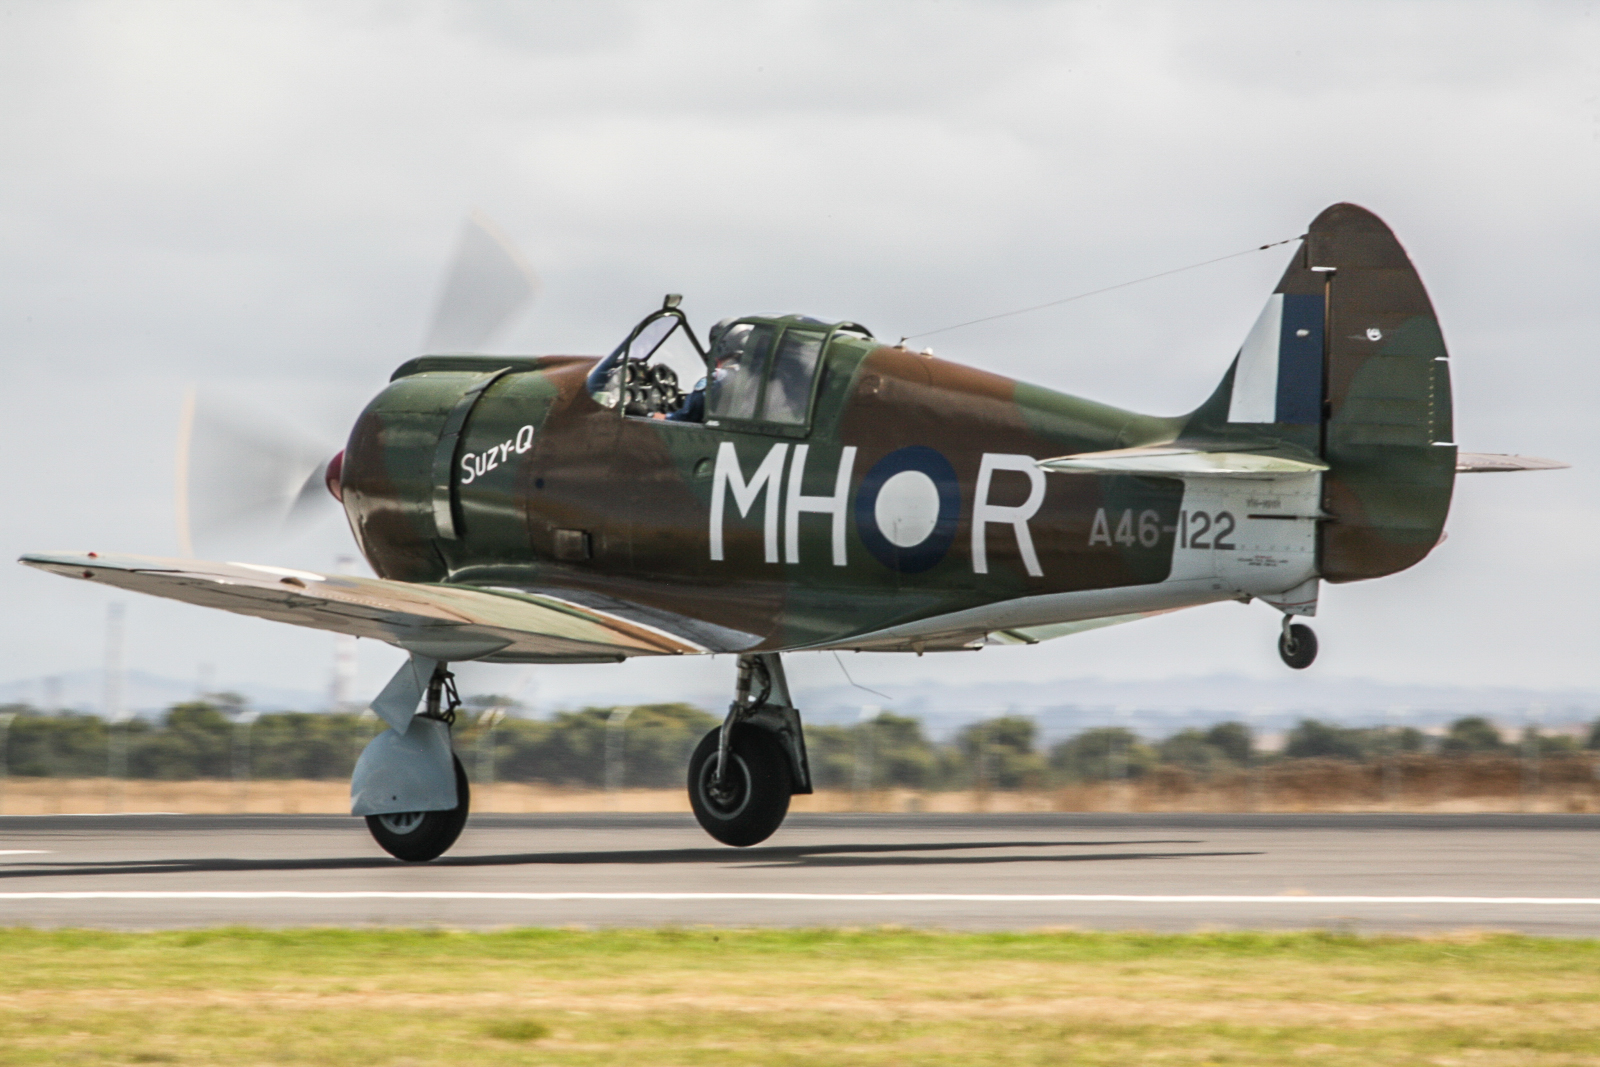 The Temora Aviation Museum's magnificent Boomerang A46-122, restored by Matt Denning, taking off for a flight in recent years. (photo by Phil Buckley)